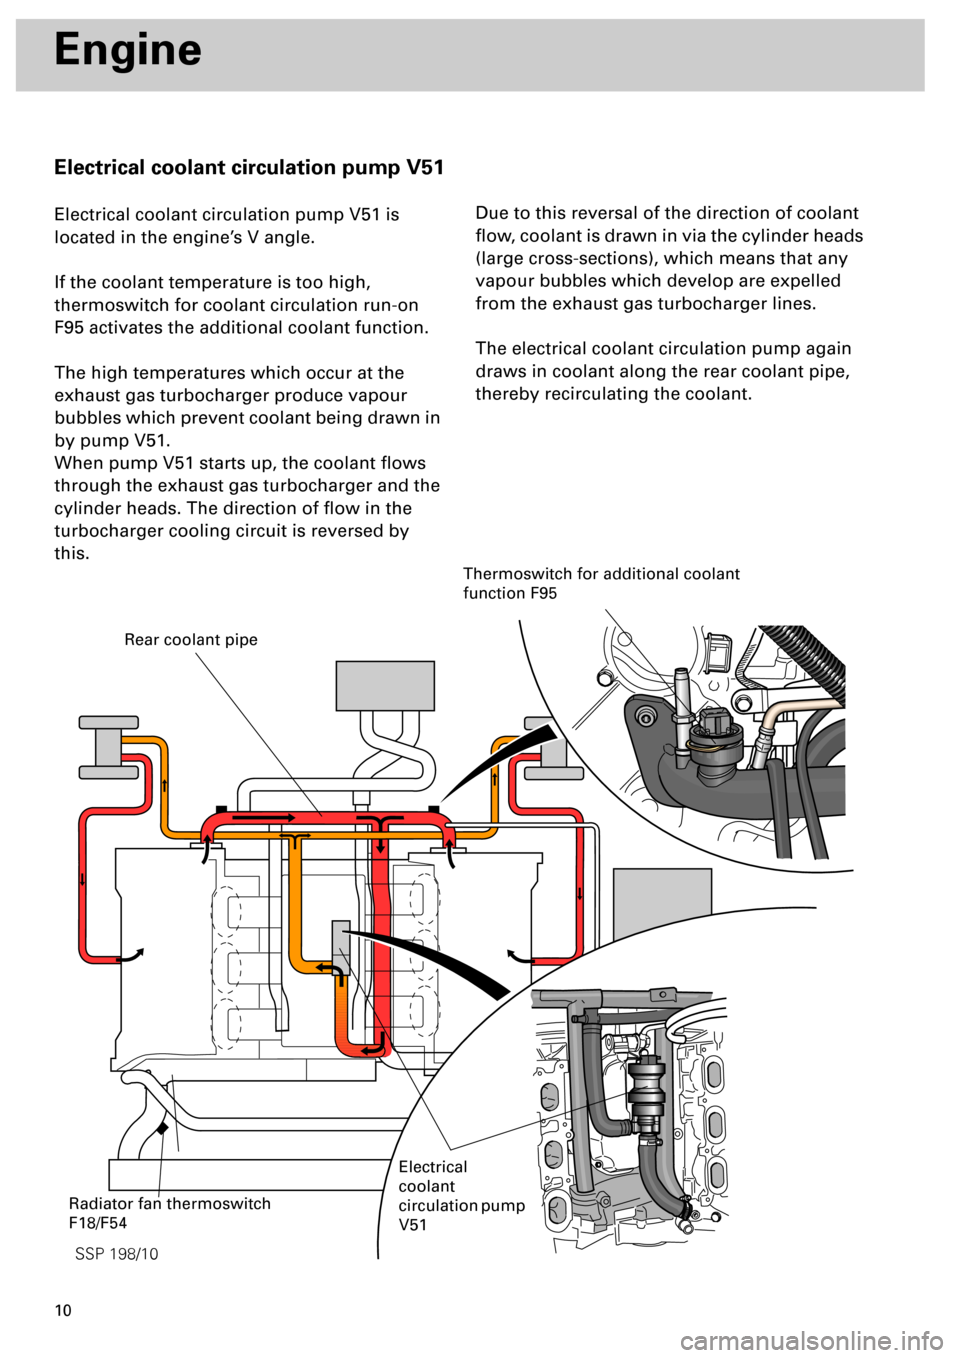 B5 Engine Diagram Wiring Library 2004 Audi S4 1998 1g Manual